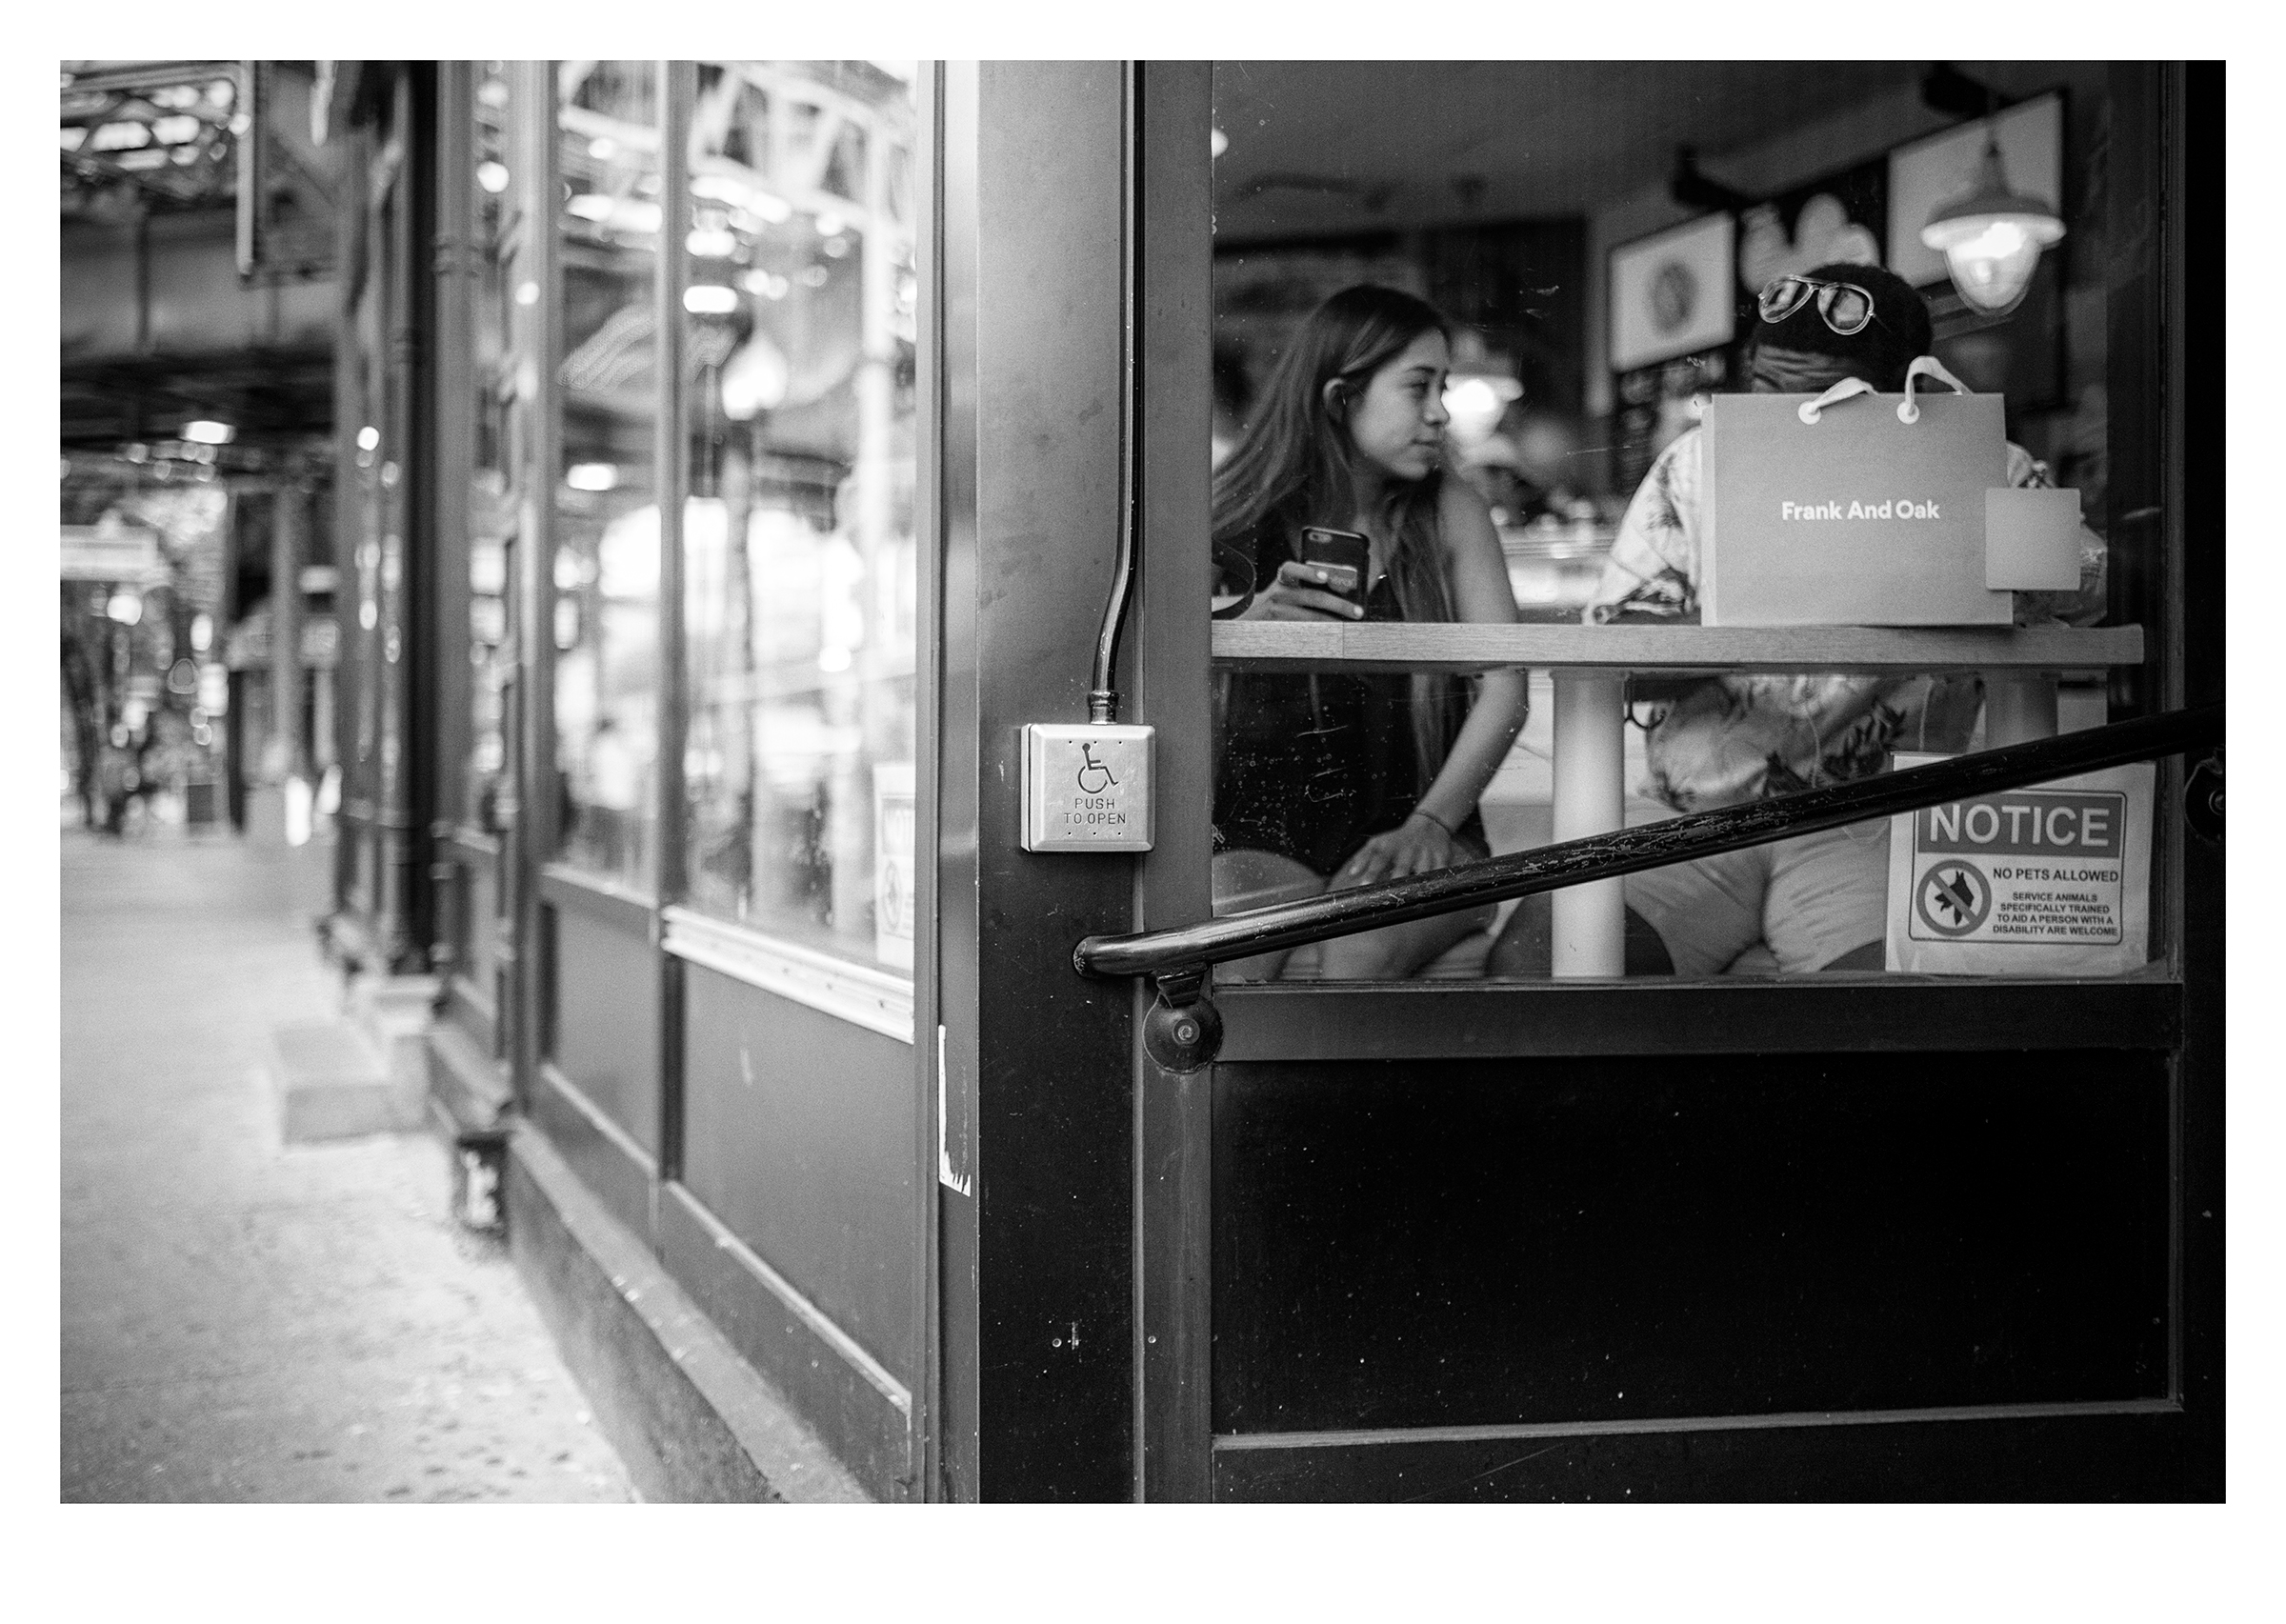 Couple at Stan's Donuts, Wicker Park, Chicago